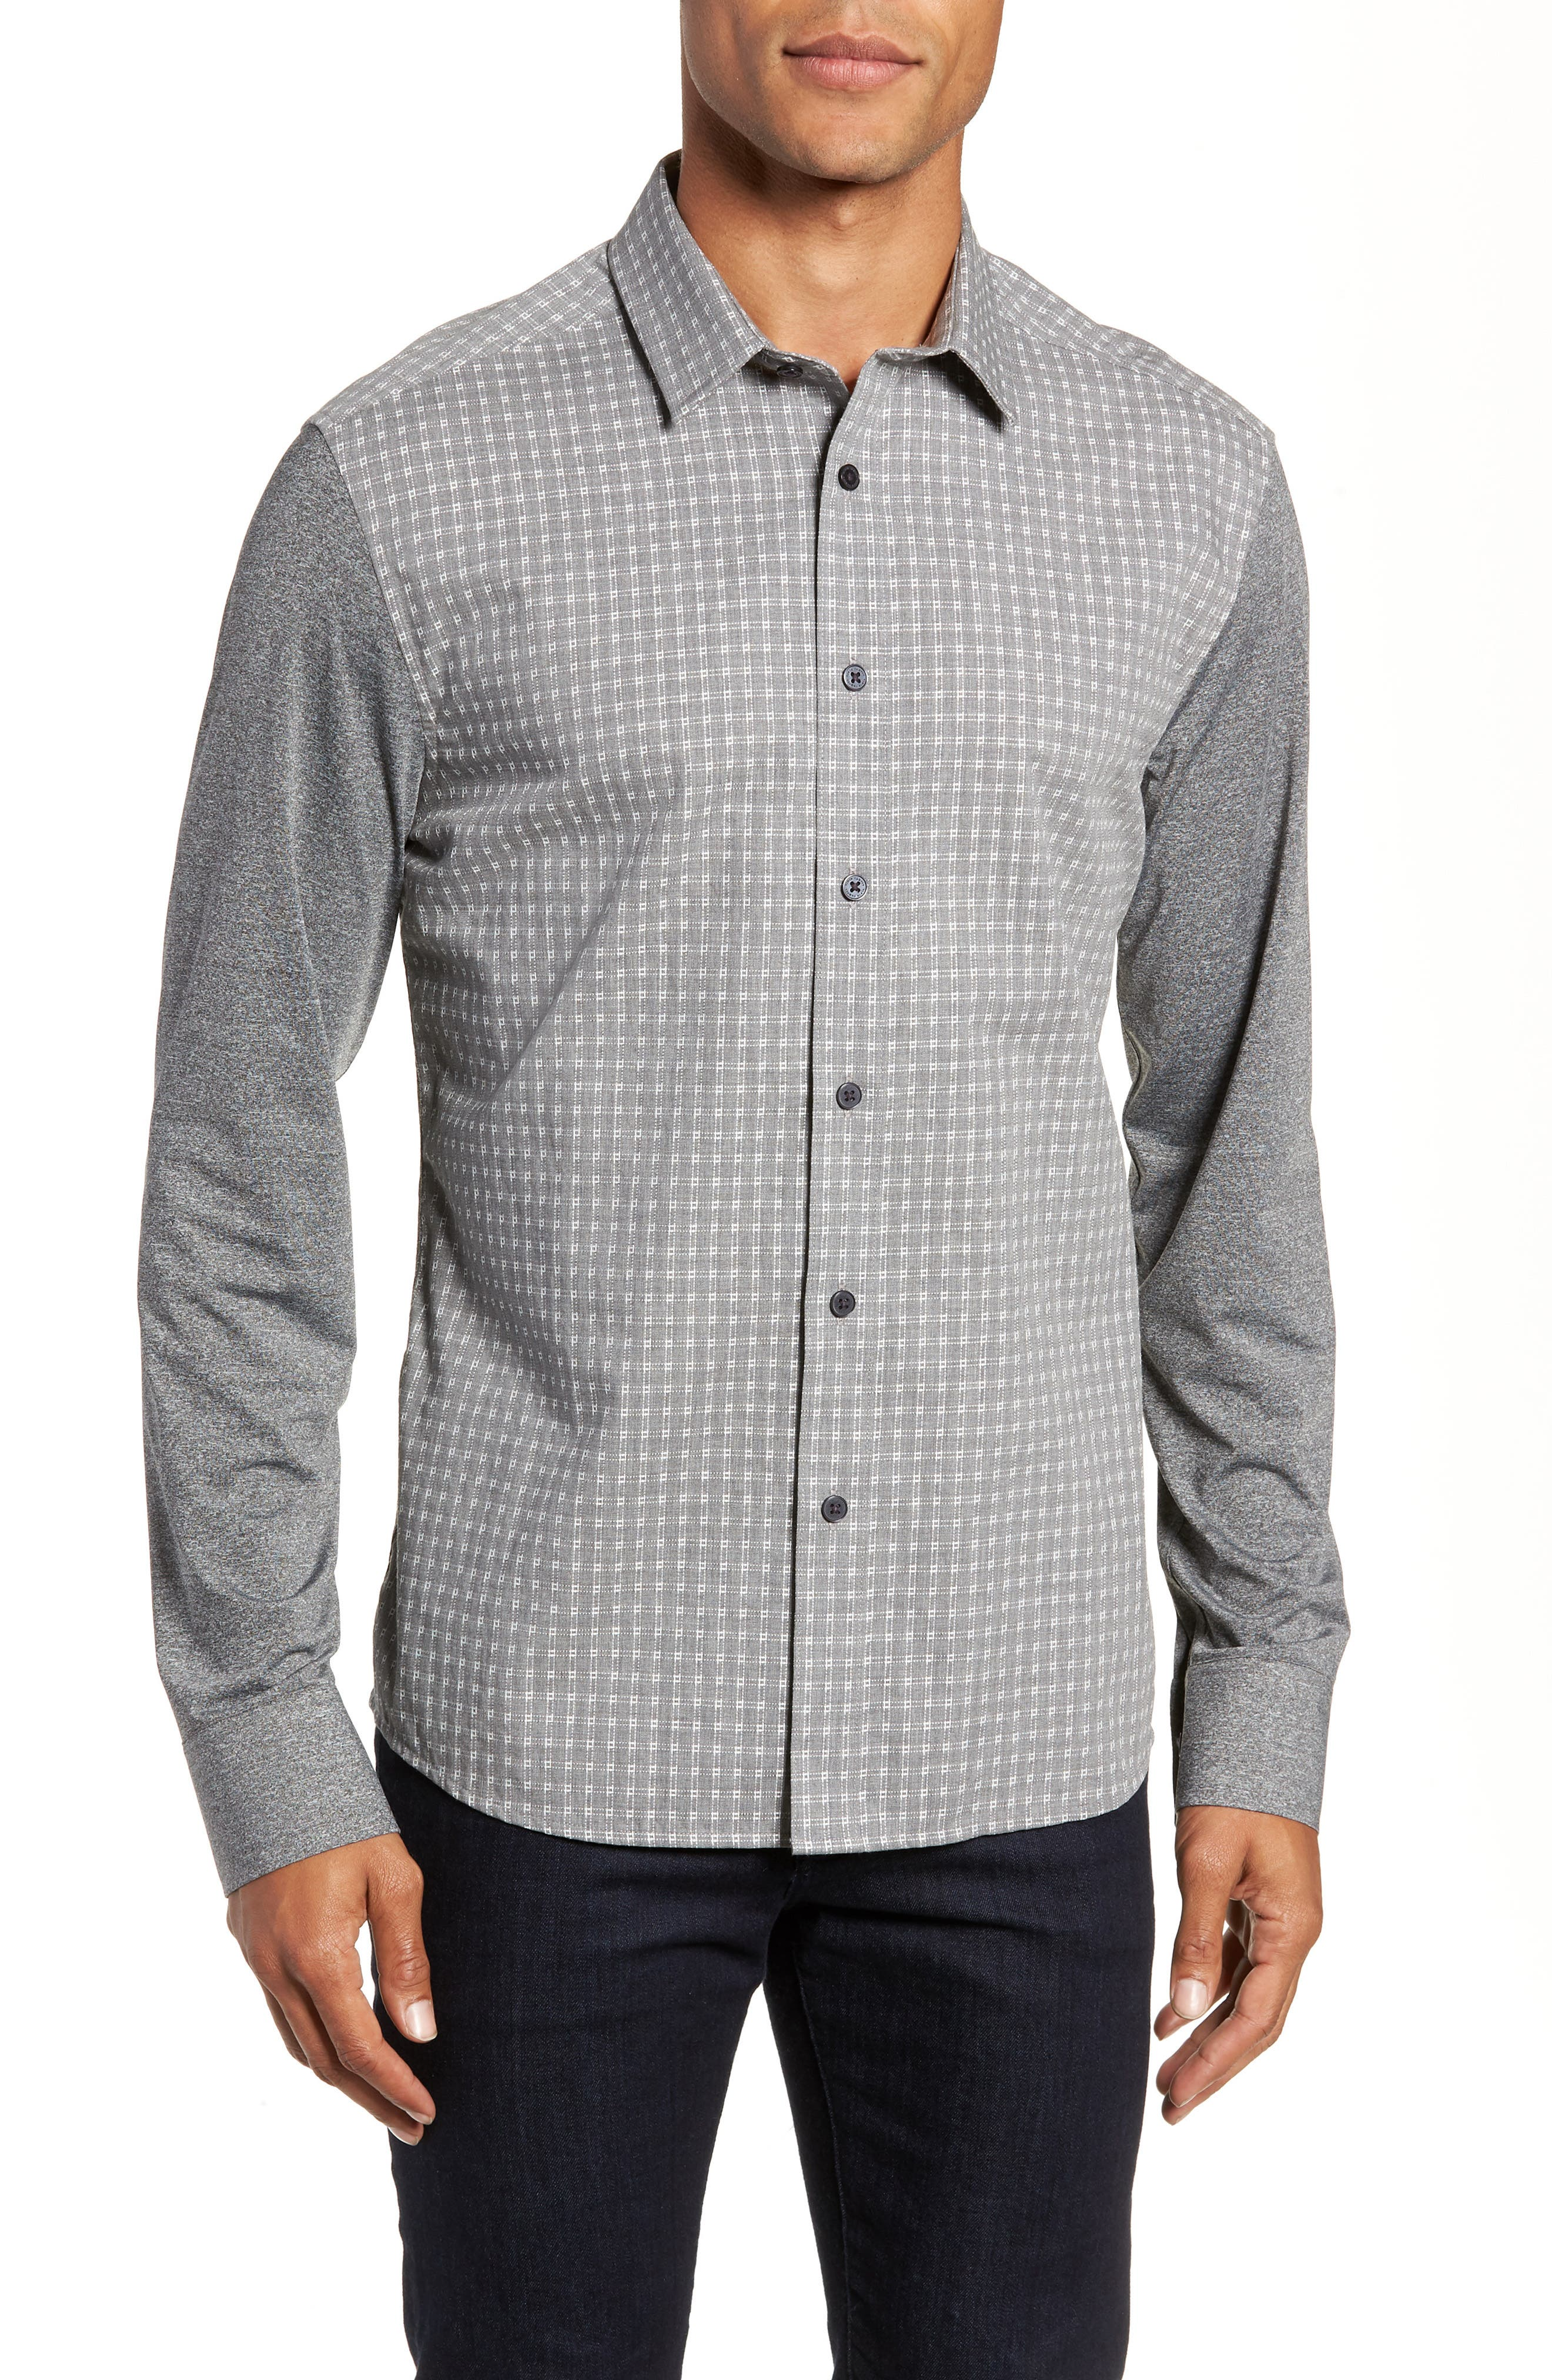 VINCE CAMUTO Slim Fit Mixed Media Sport Shirt, Main, color, 034